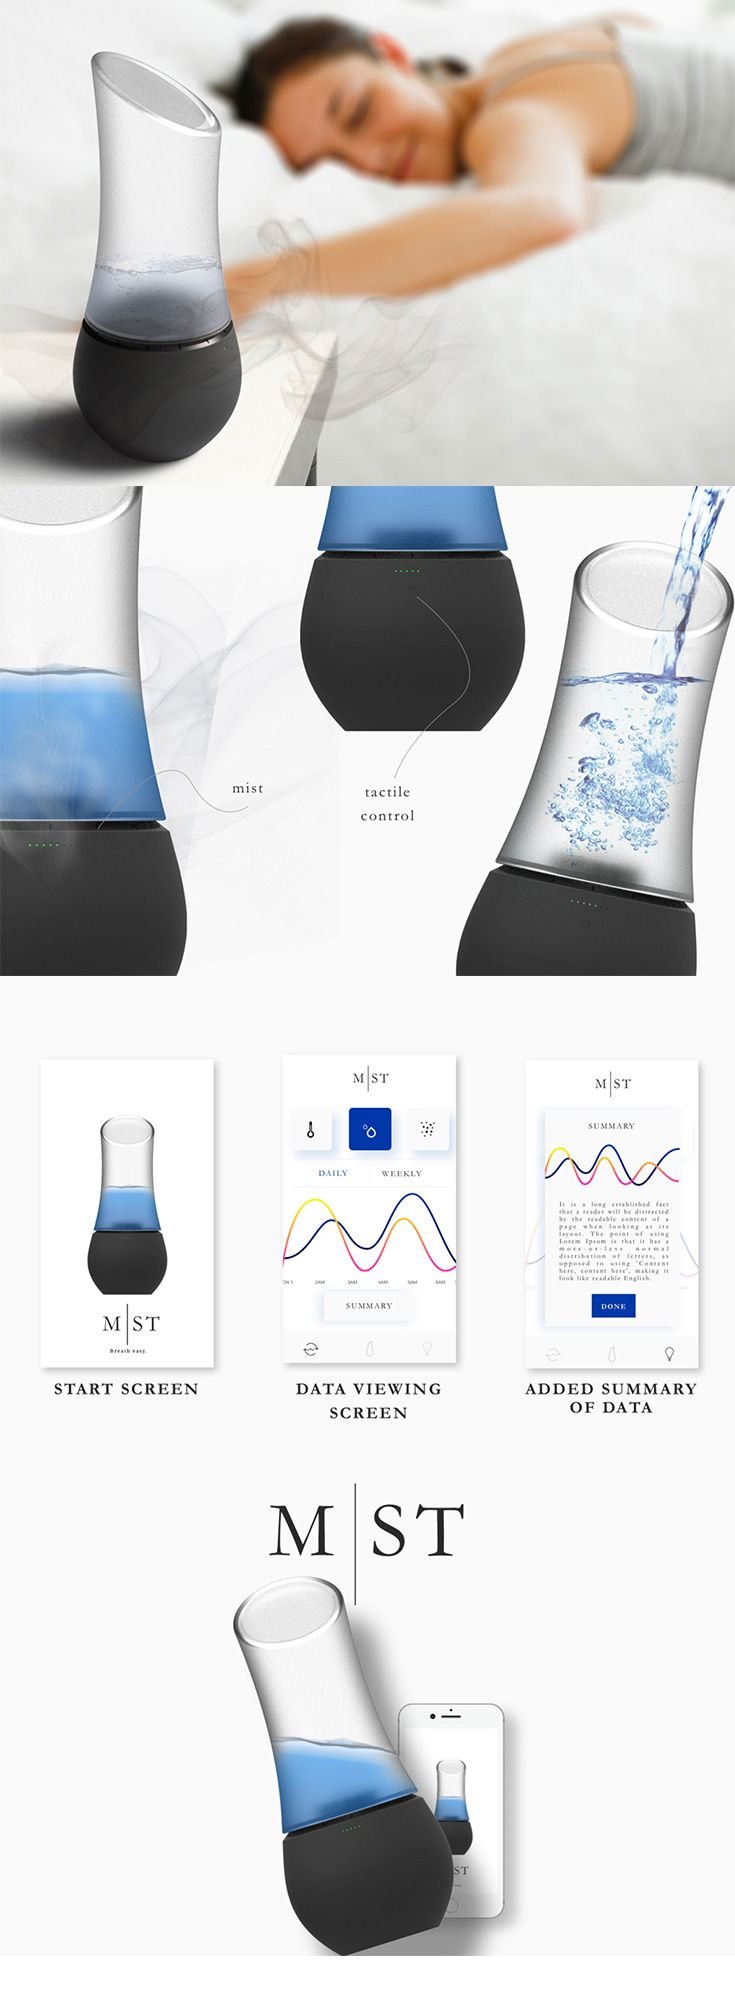 An alternative to the CPAP machine used to treat sleep apnea, MST is a smart sleep-monitoring device which tracks the user while they sleep and pinpoints data  that could contribute to restless sleep... READ MORE at Yanko Design !